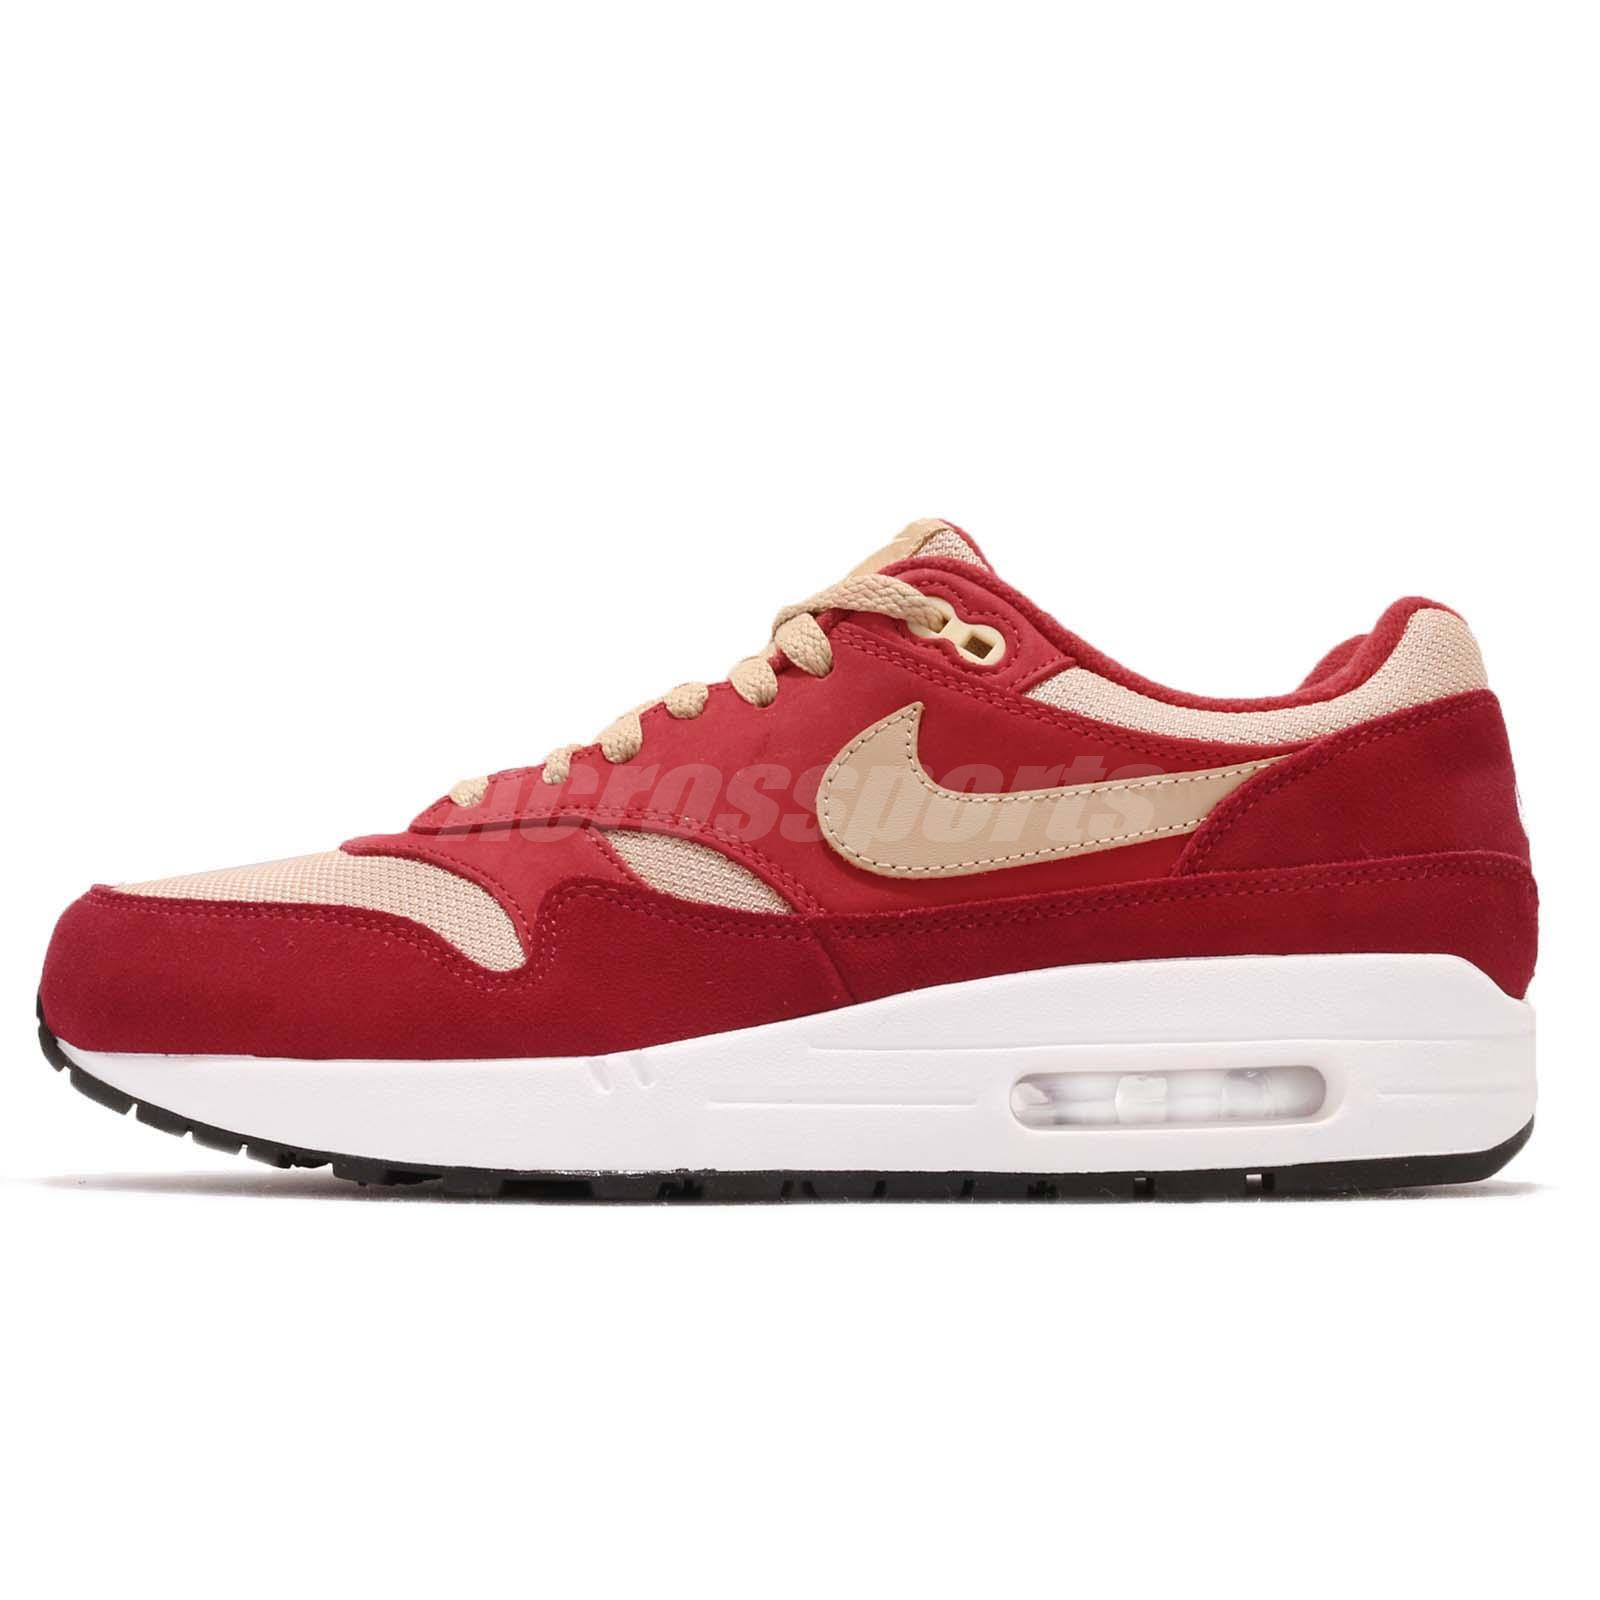 watch 293e4 9a945 atmos X Nike Air Max 1 Premium Retro Red Curry Pack Men Running Shoes 908366 -600